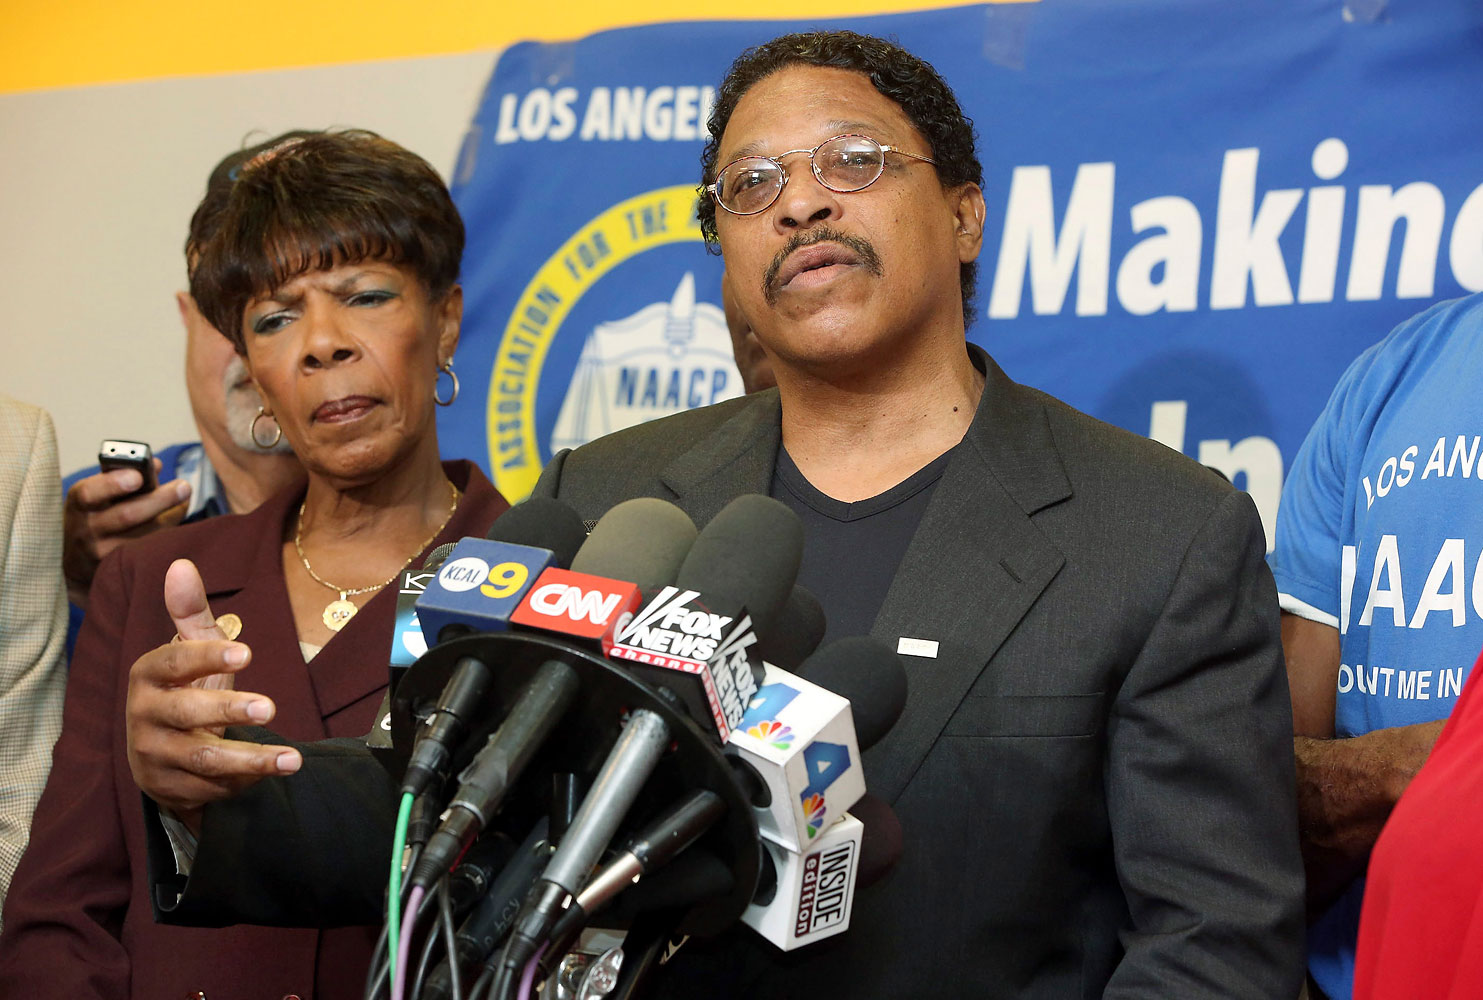 Leon Jenkins, right, president of the Los Angeles chapter of the NAACP, announces that Los Angeles Clippers owner Donald Sterling will not be receiving his lifetime achievement award, at a news conference in Culver City, Calif., April 28, 2014.